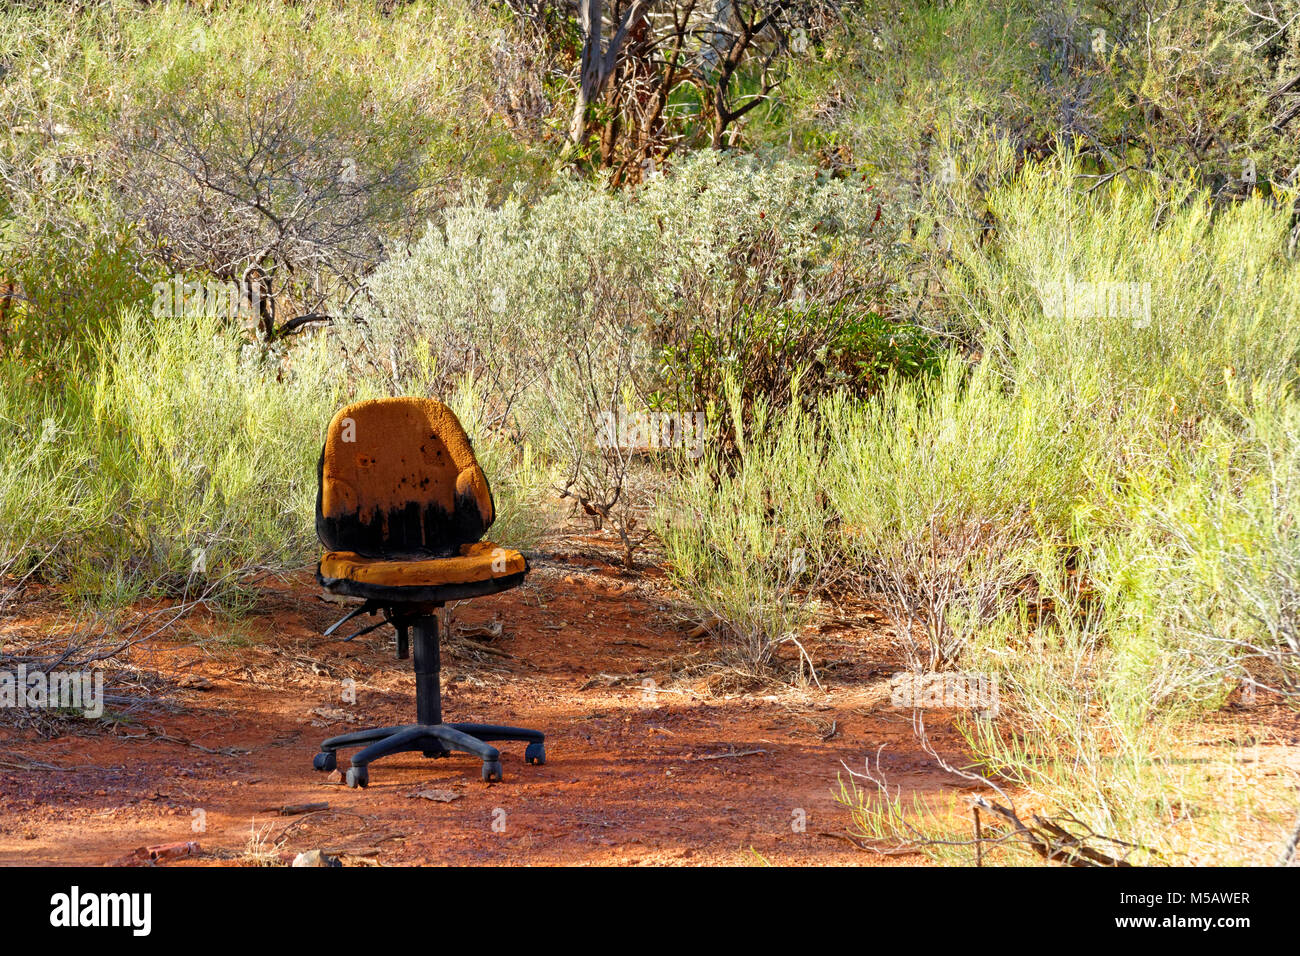 Old office chair in Australian bush land, Murchison, Western Australia - Stock Image